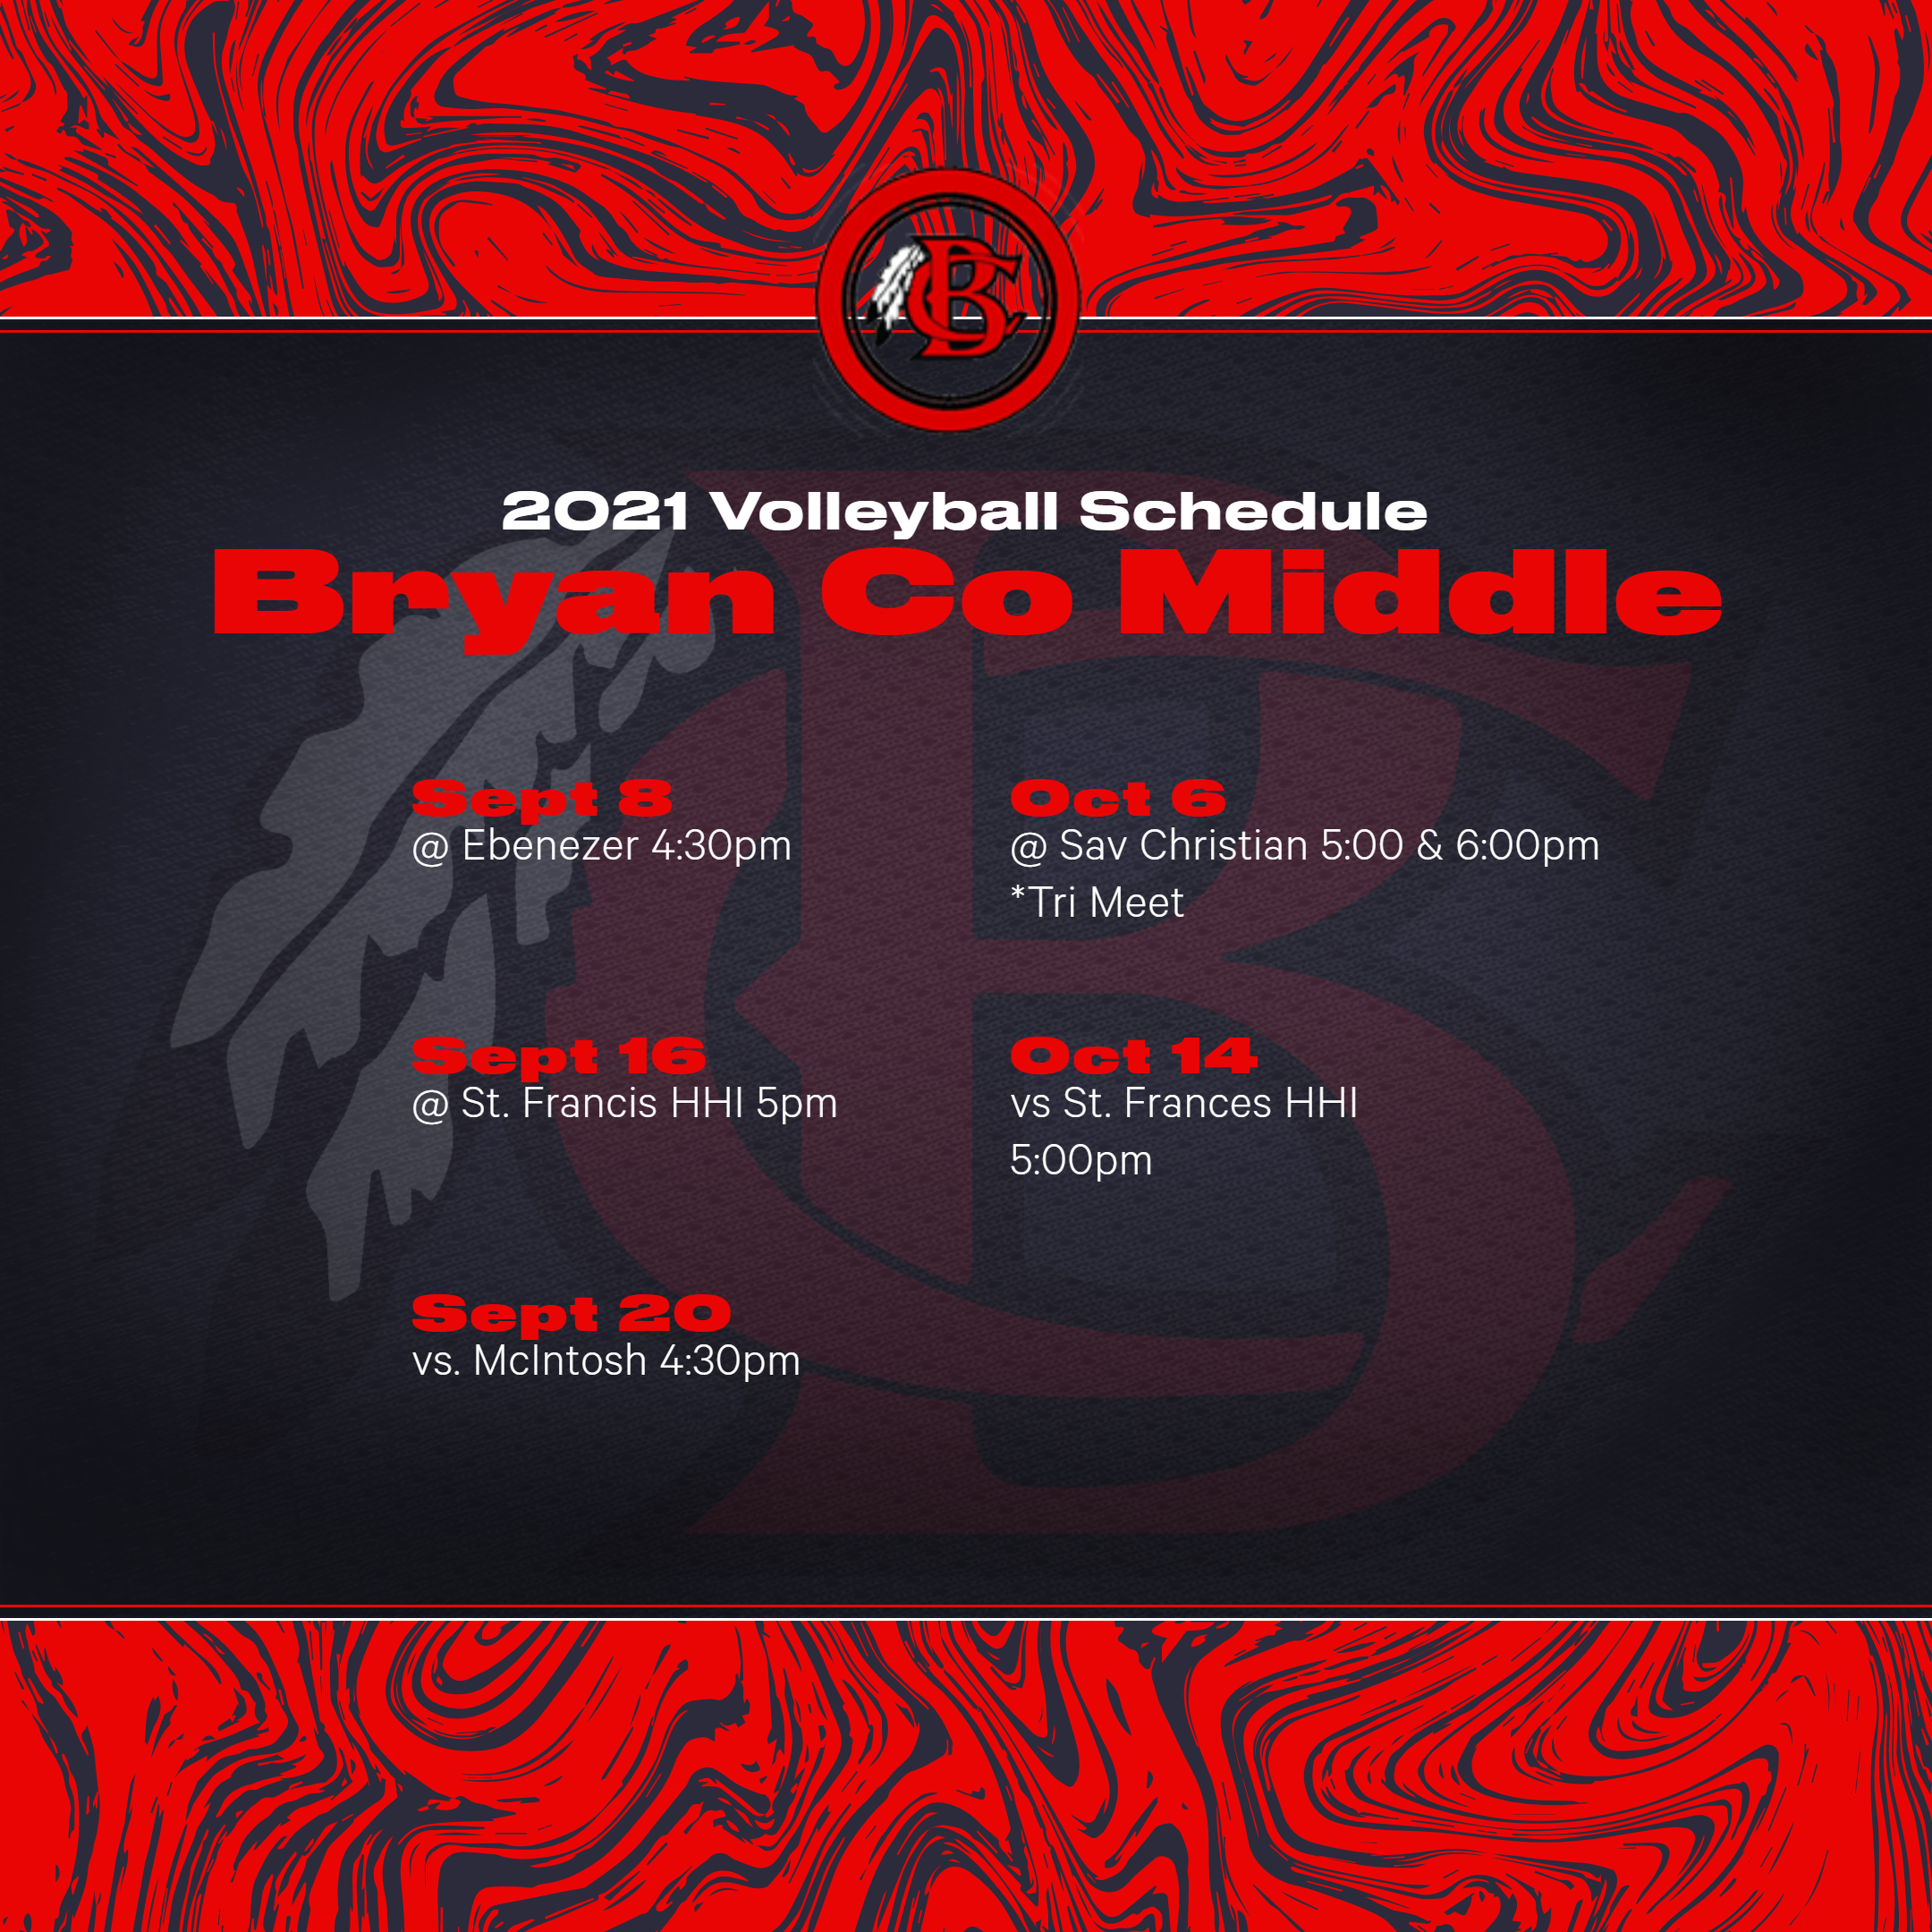 Middle School Volleyball Schedule 2021